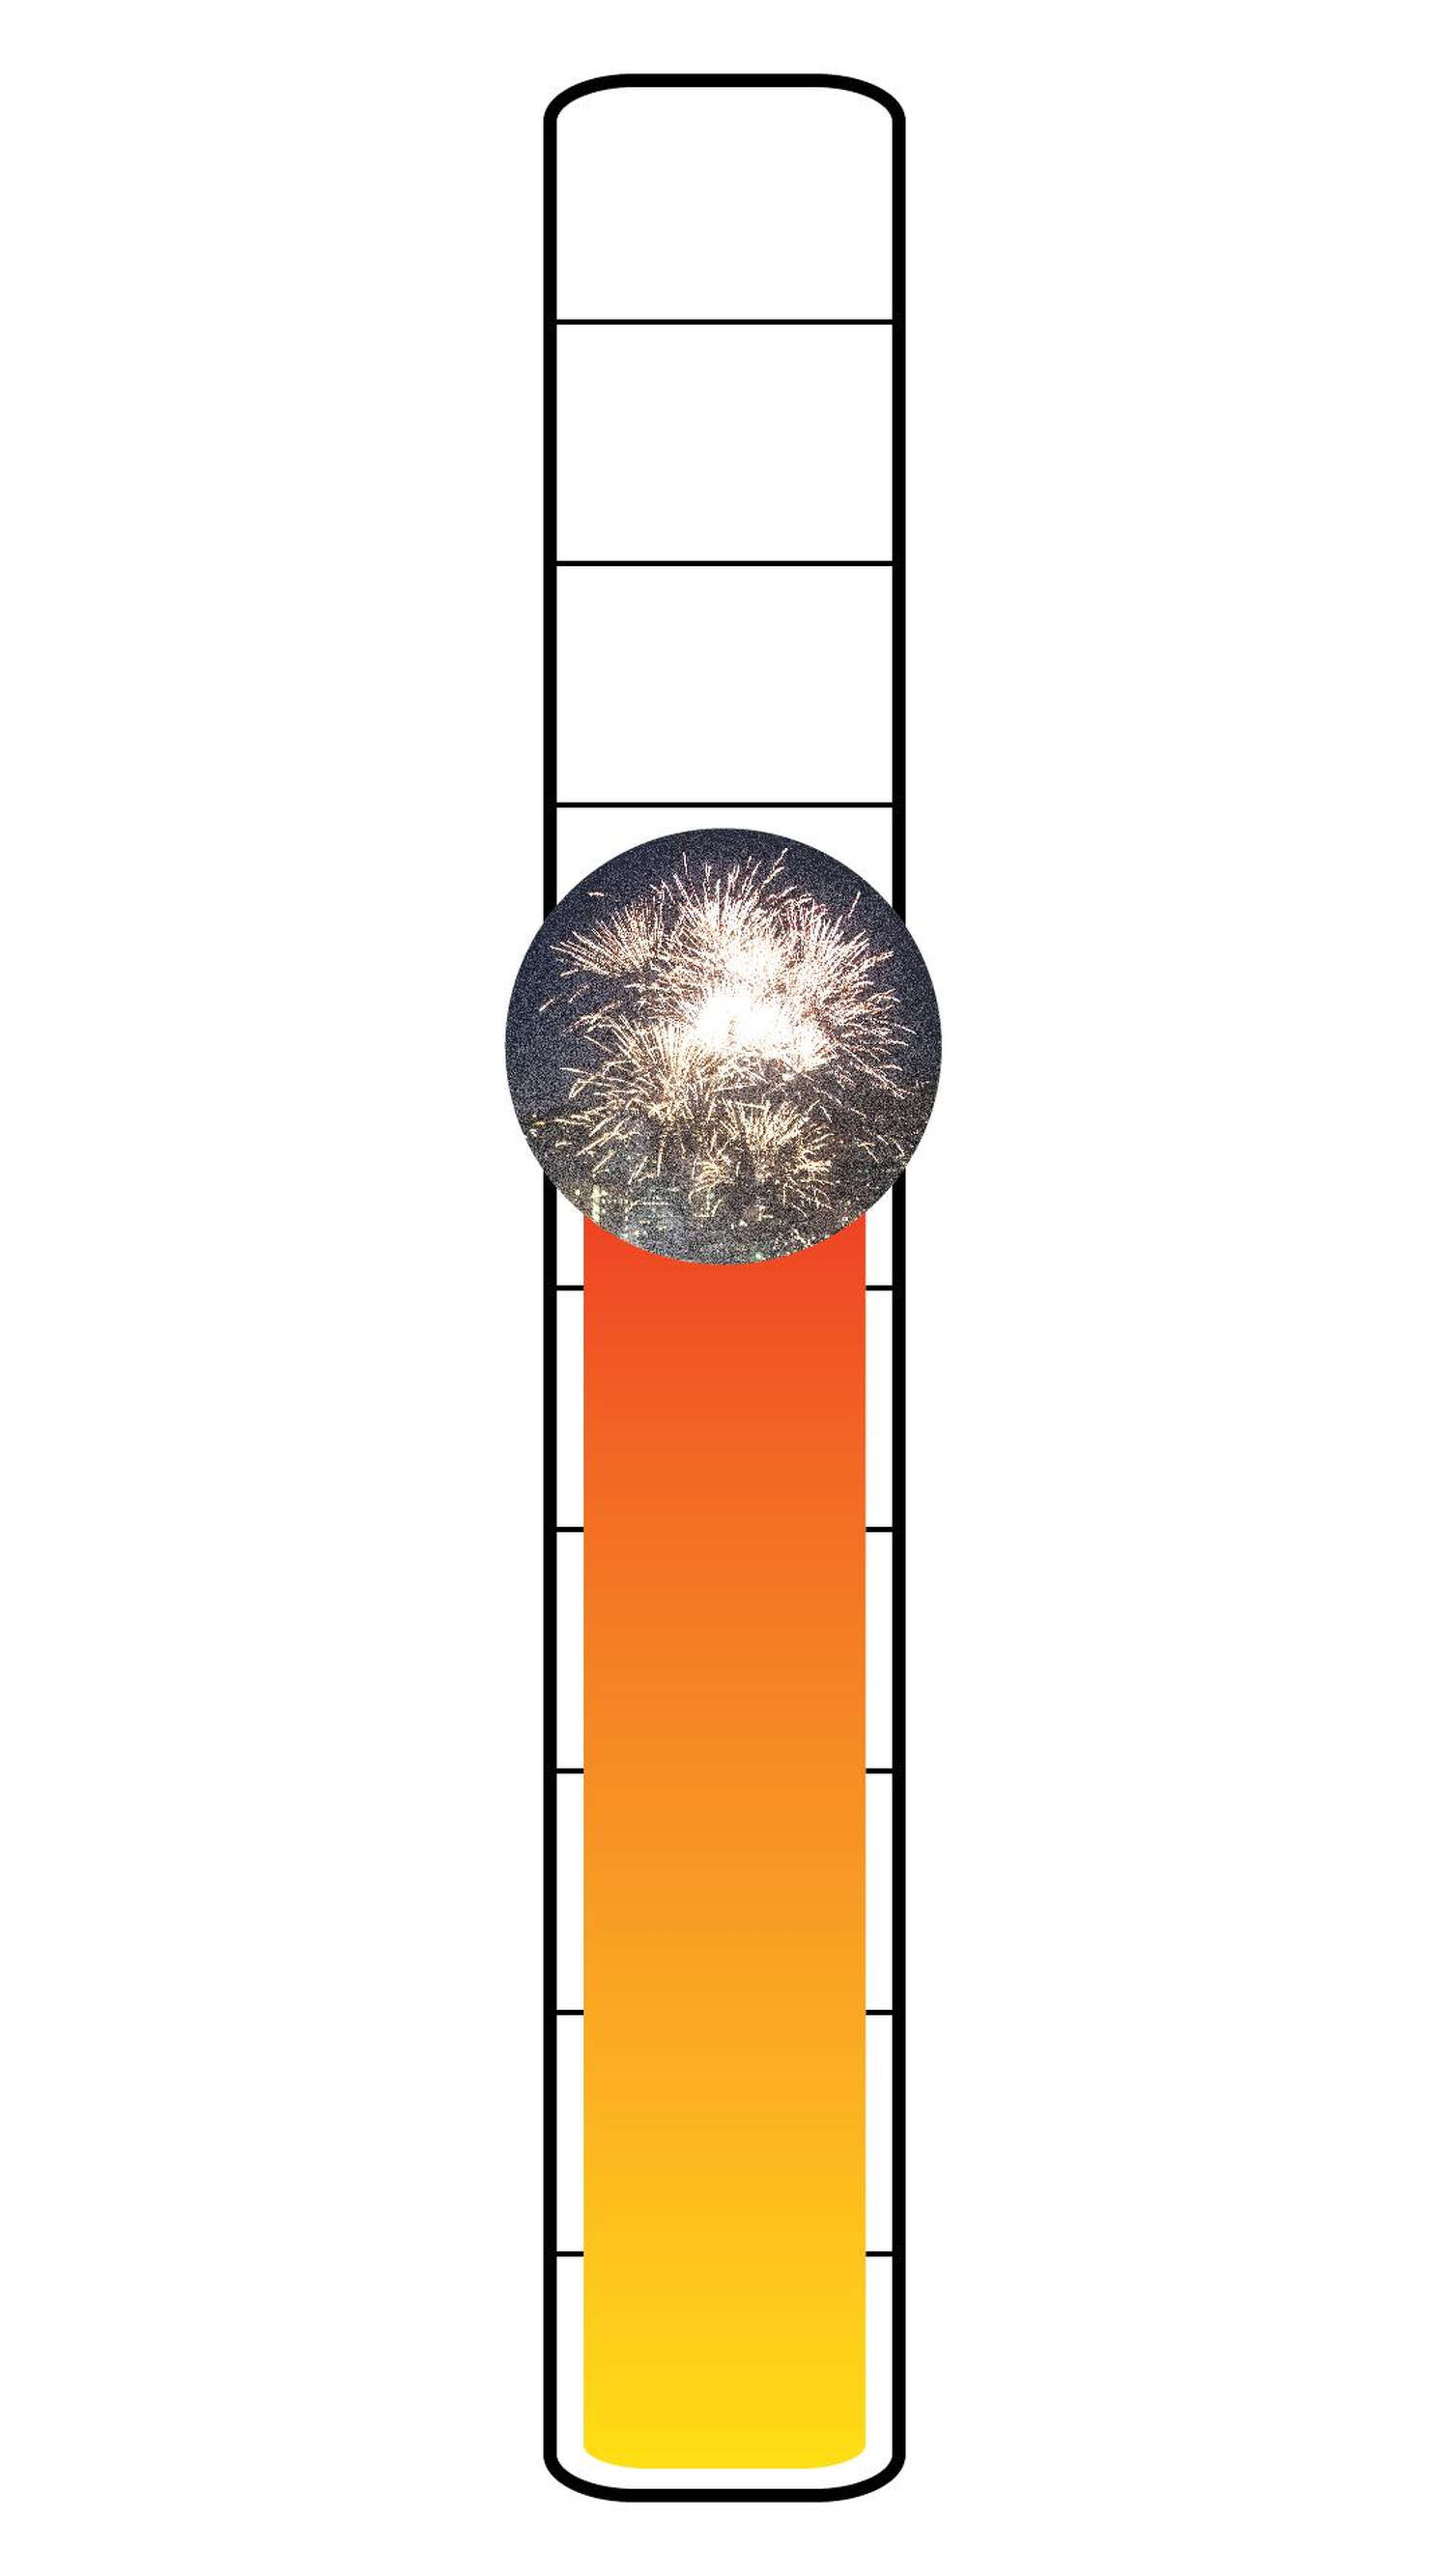 Meter: 6/10. Icon of a fireworks display.